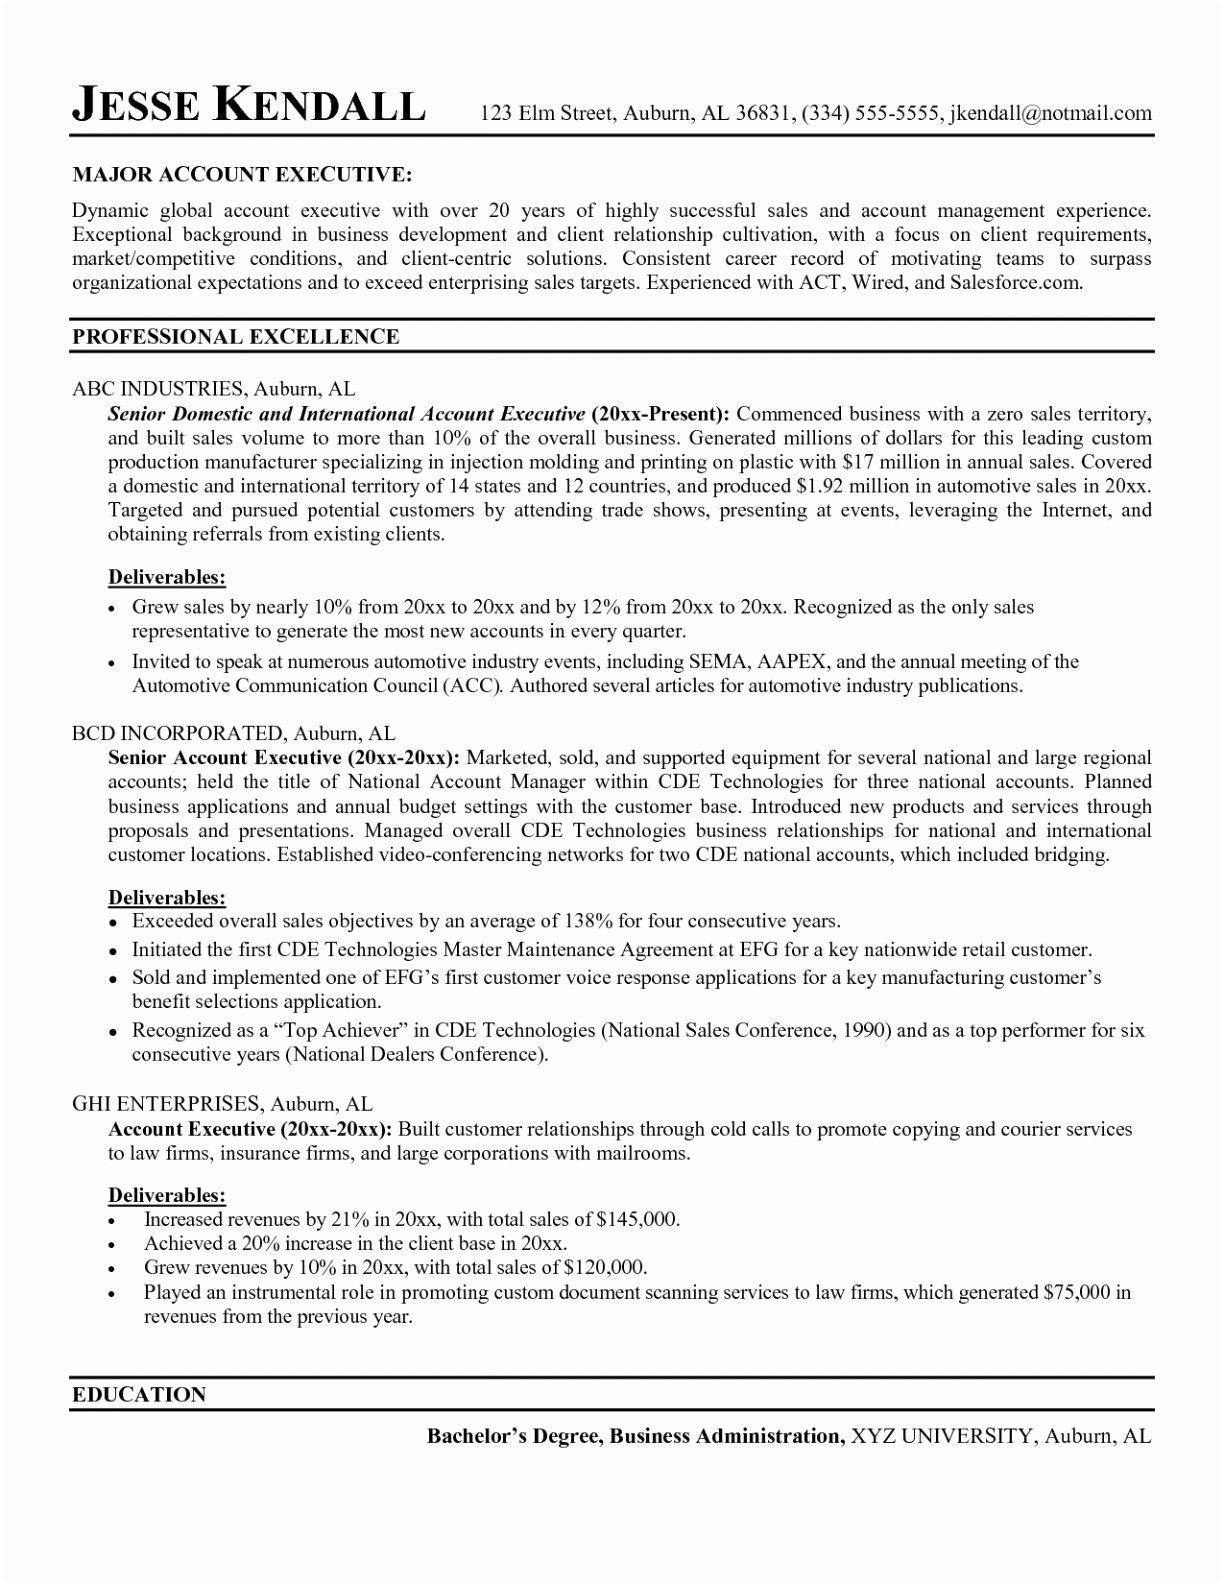 best business resume inspirational best resumes for sales executives resume resume examples rmqnq6nazd of best business resume